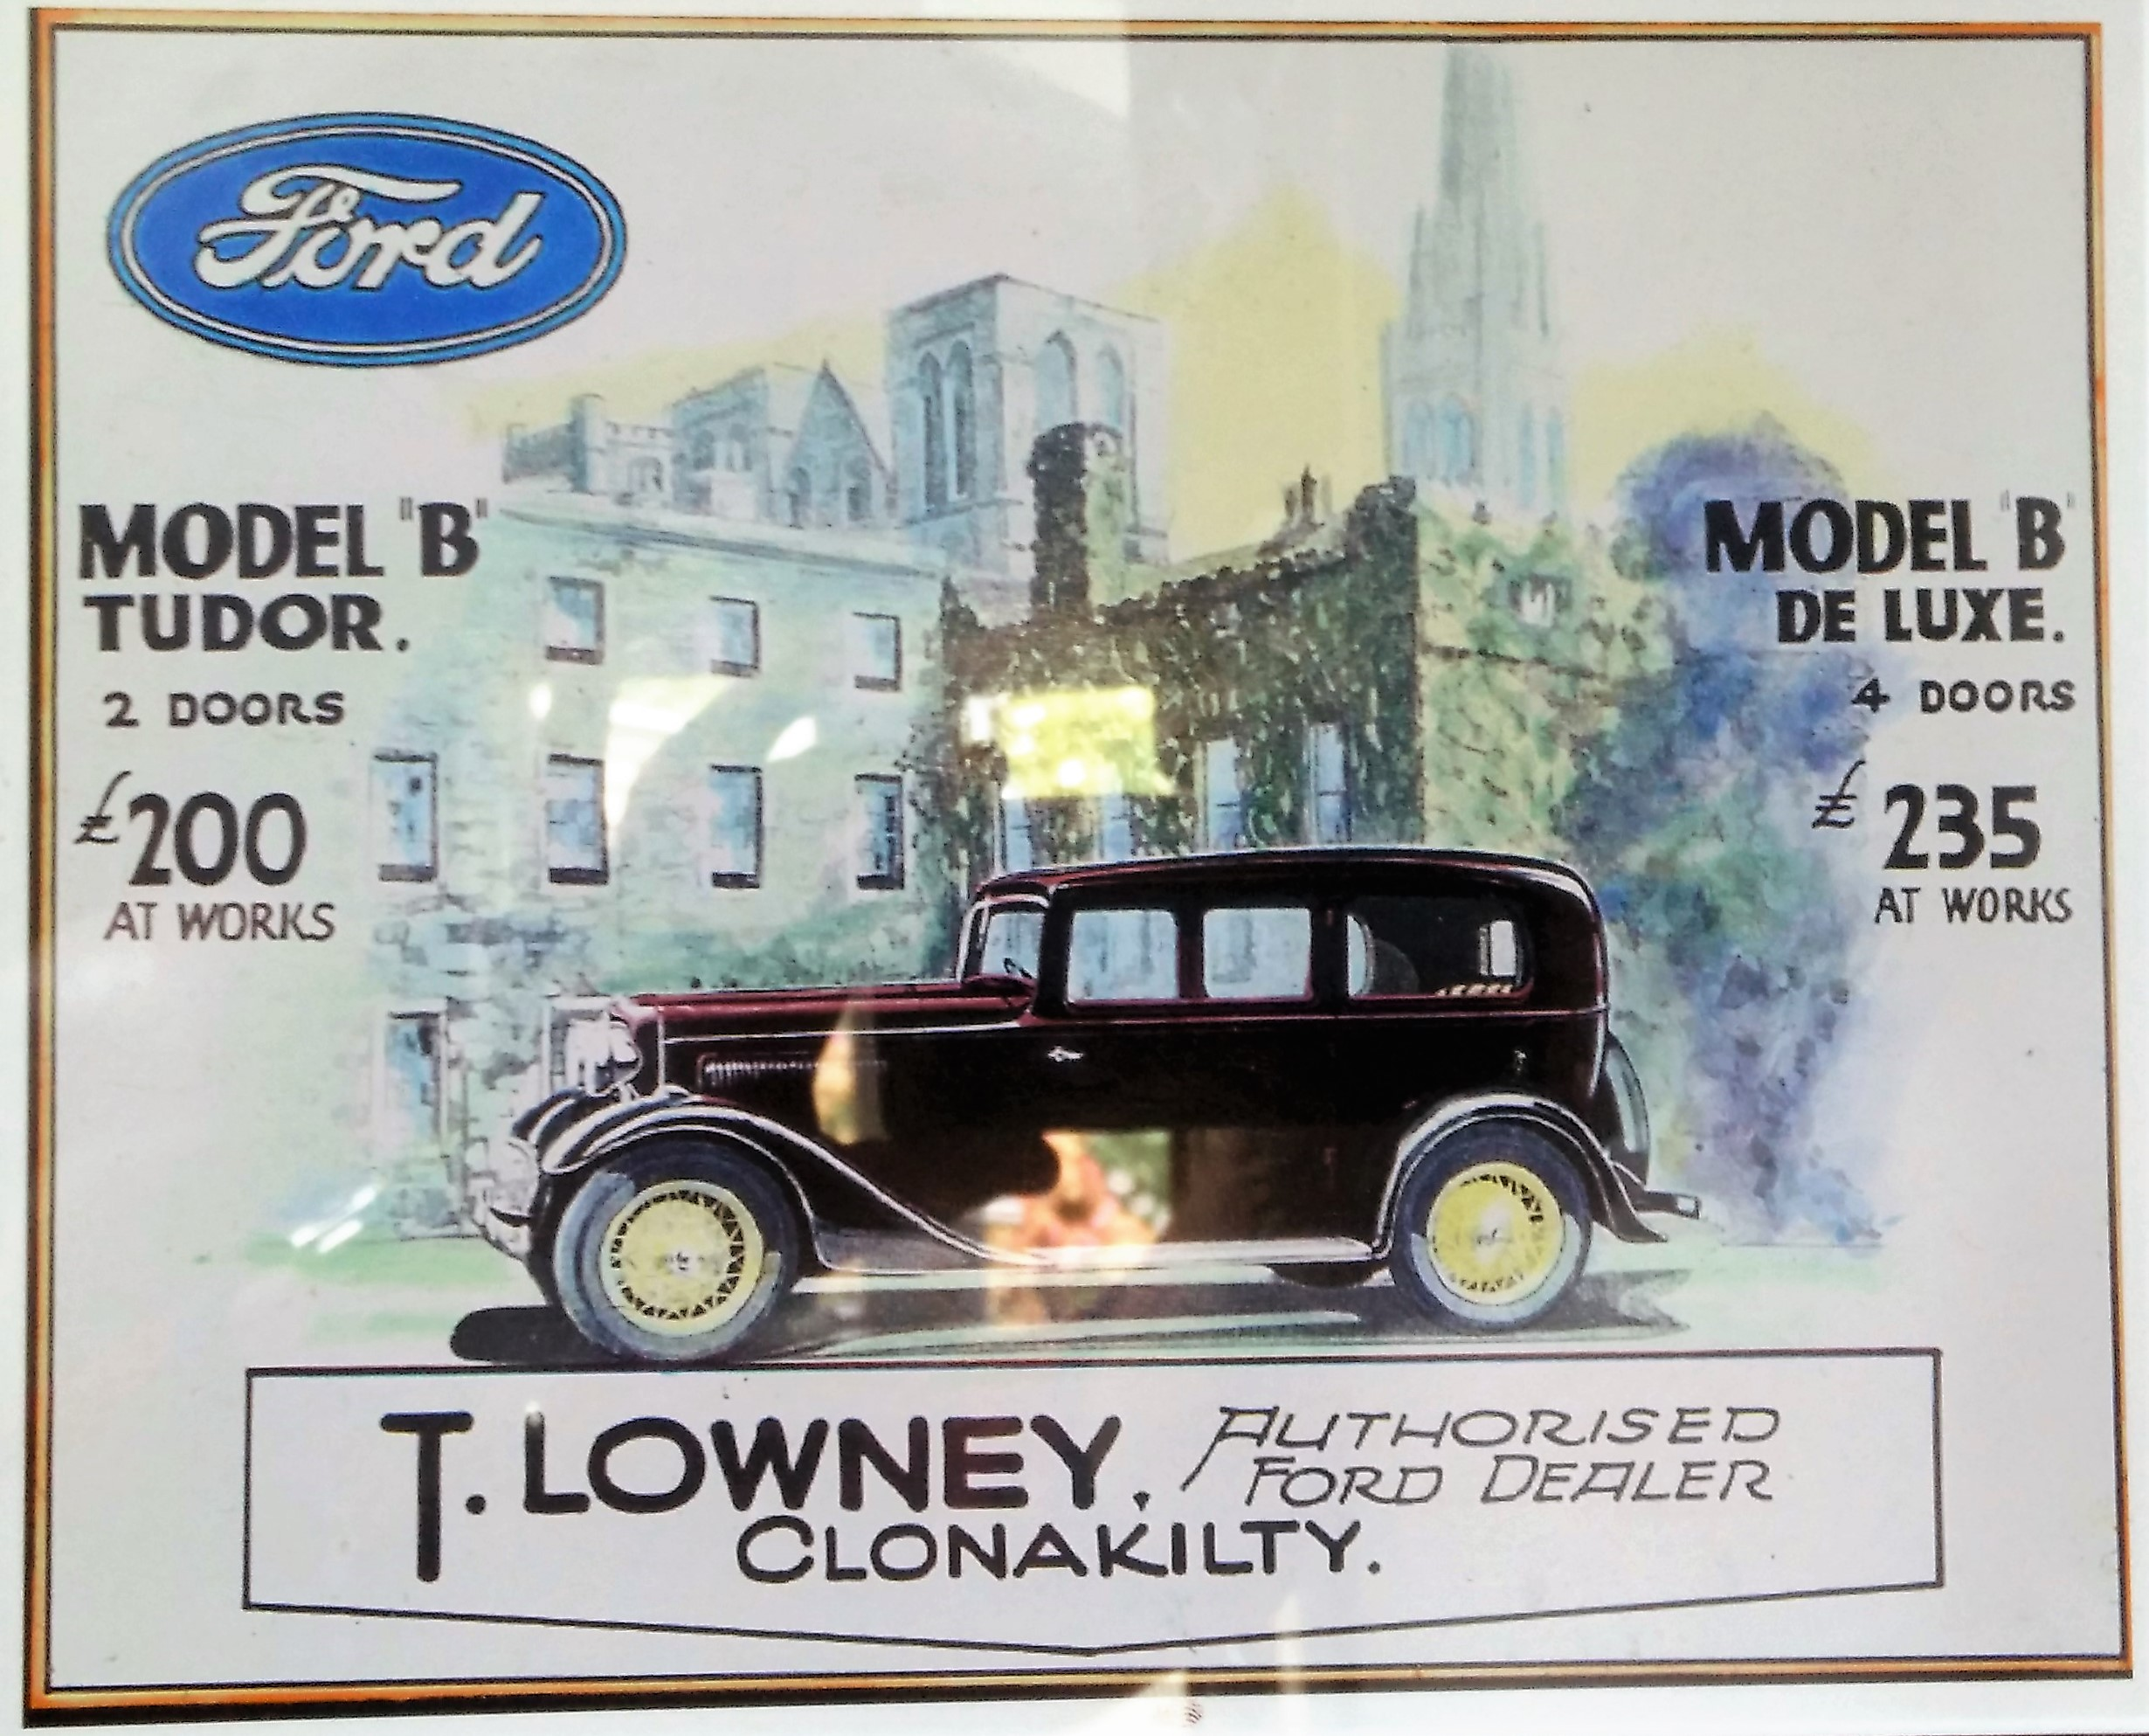 T LOWNEY (Clonakilty Ford Dealership)